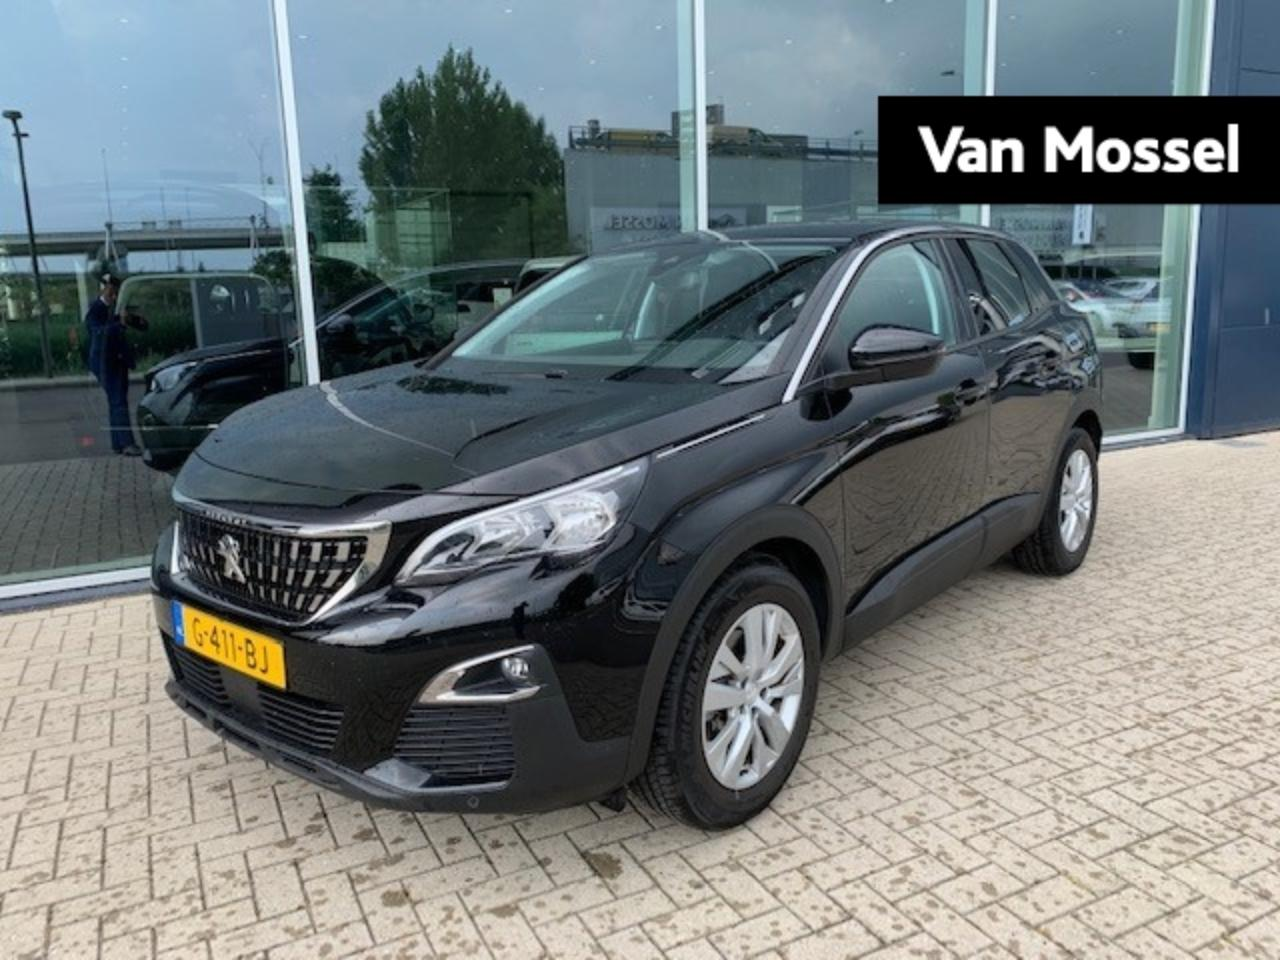 Peugeot 3008 SUV BLUE LEASE Executive 1.6 BlueHDI 120pk